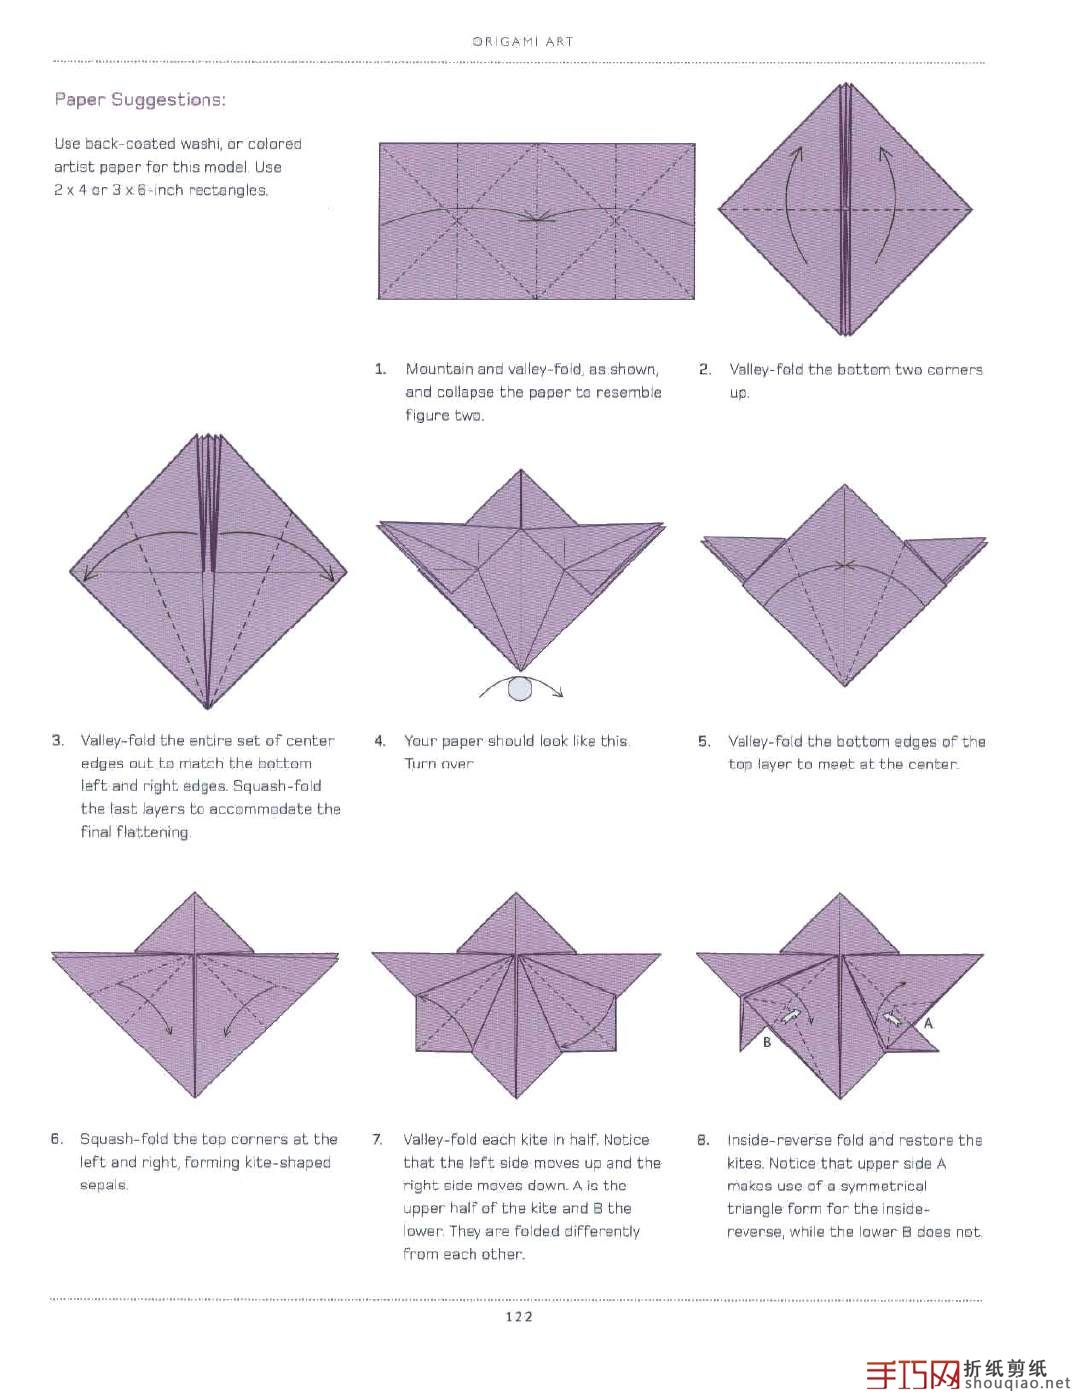 Origami money folding instructions cool ideas - Origami Flowers Diagram On How To Fold A Simple Orchid Flower Like